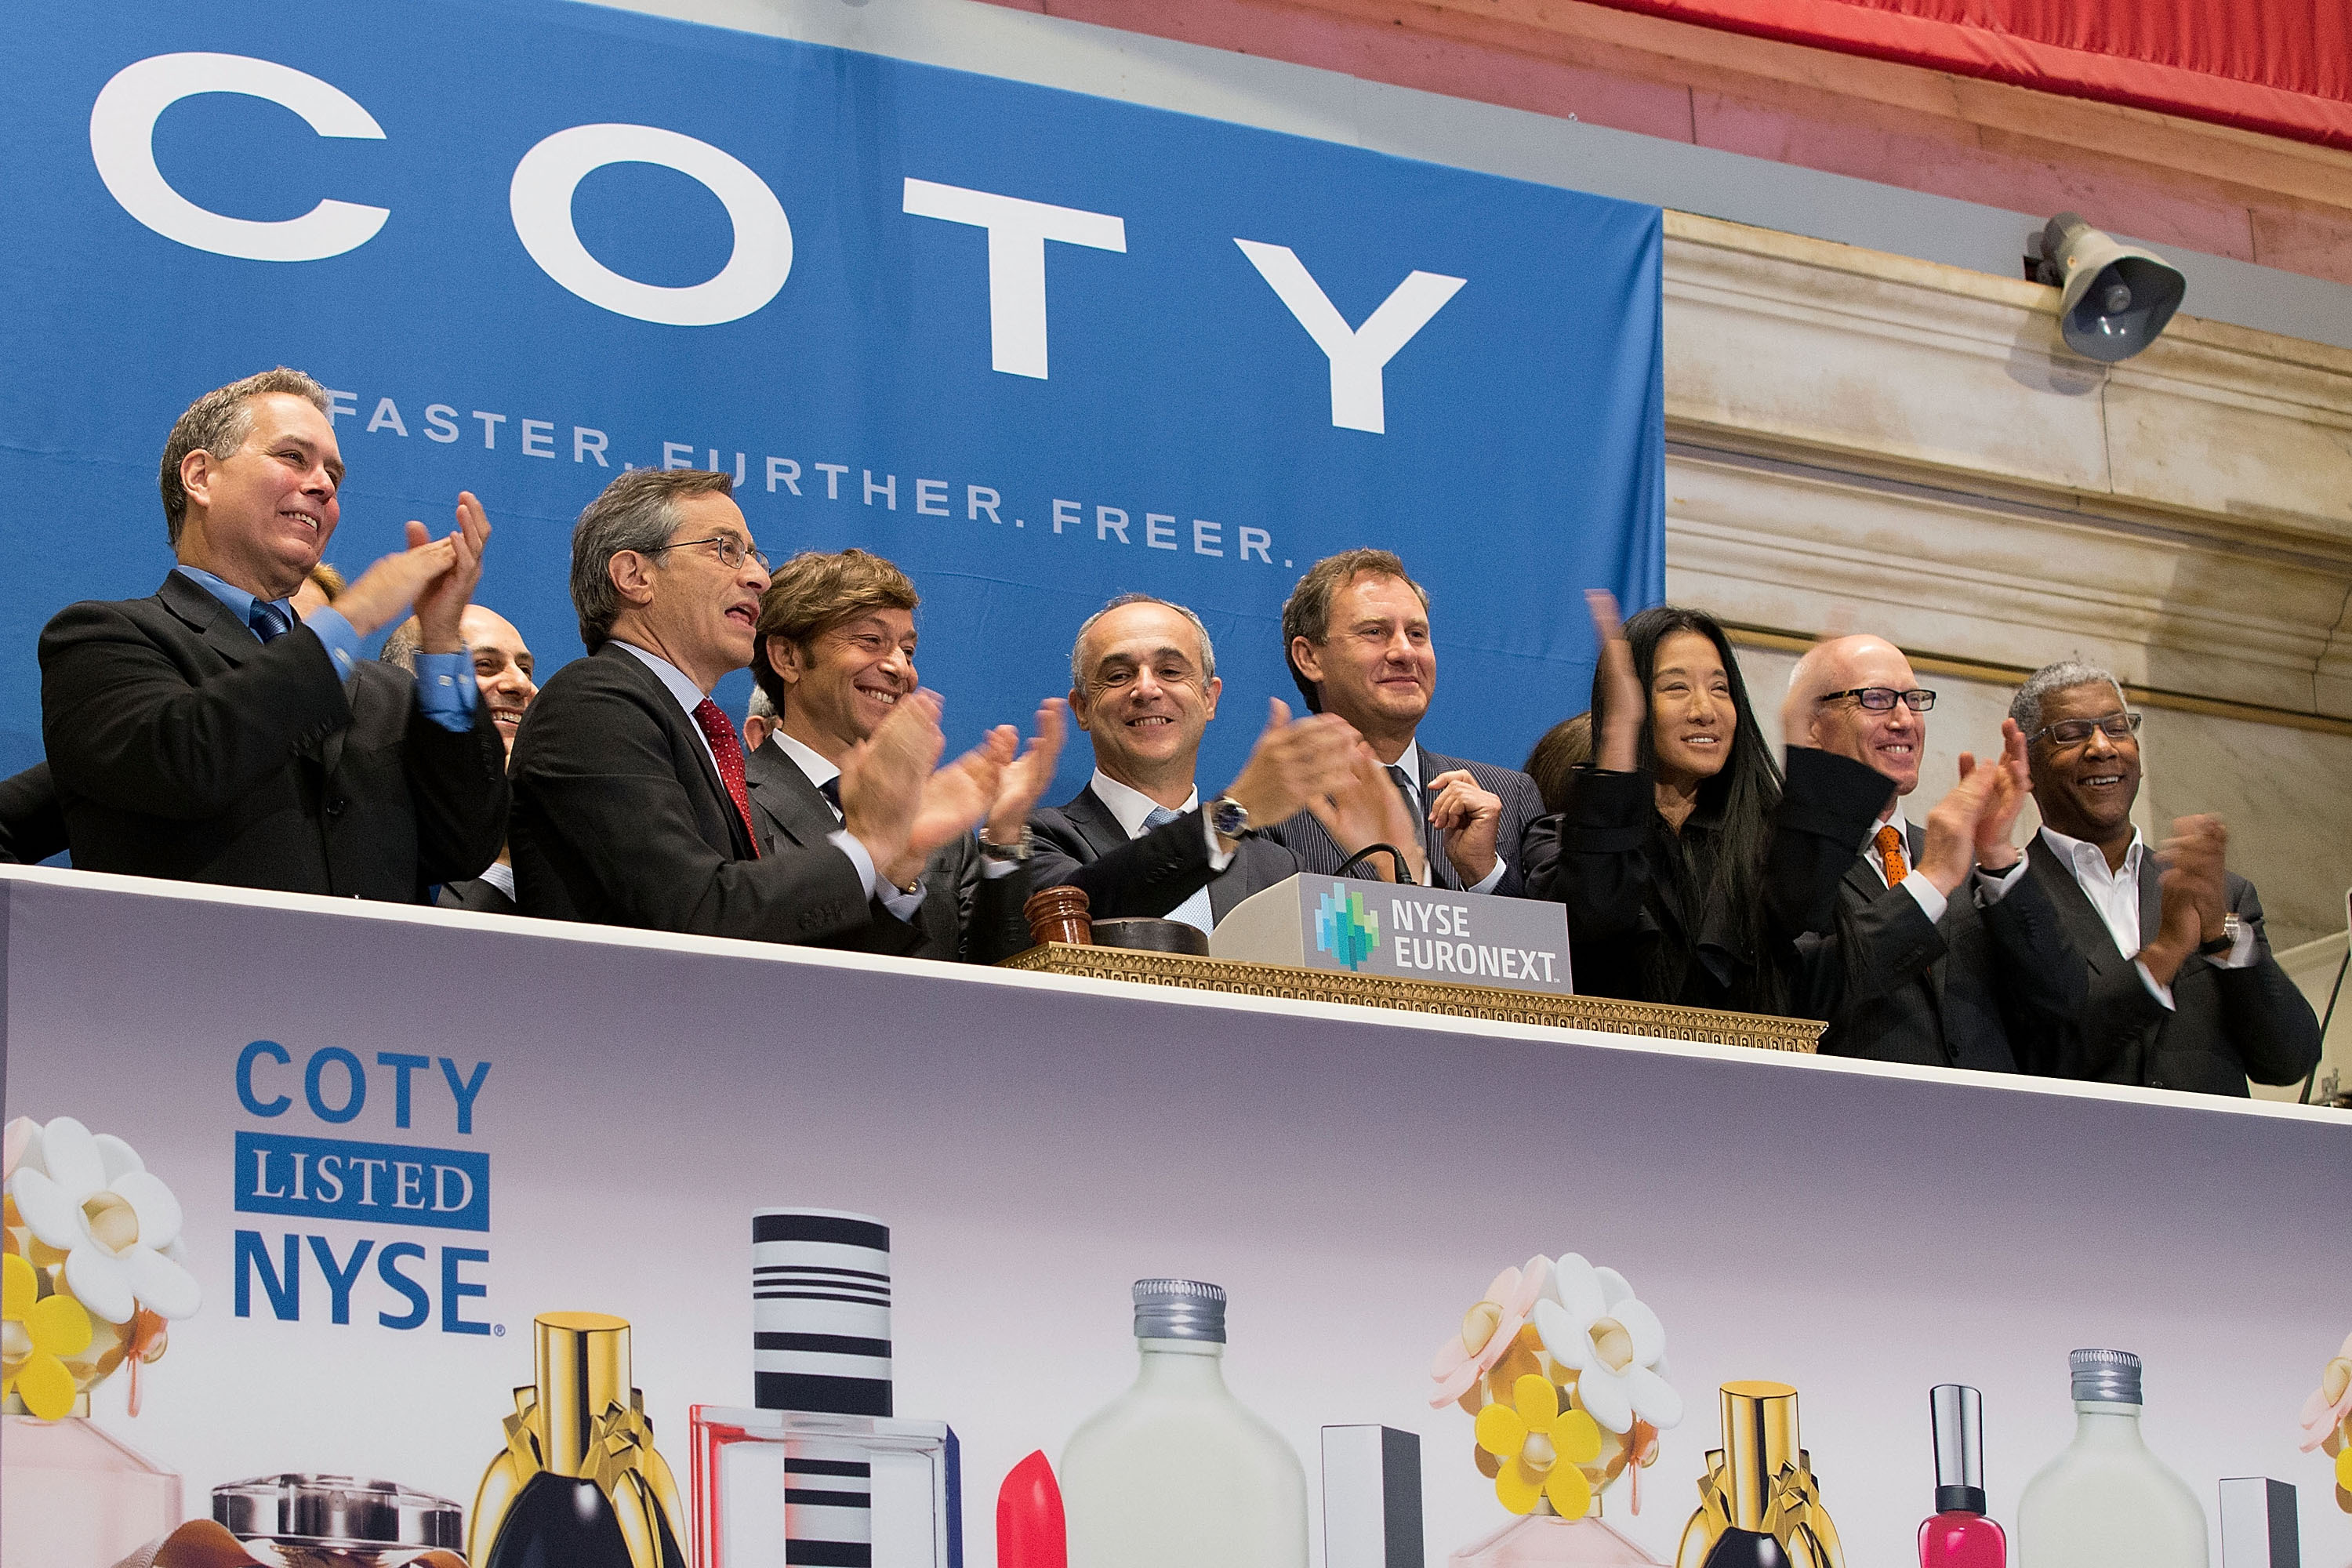 Nyse Euronext Welcomes Coty Inc To The New York Stock Exchange On